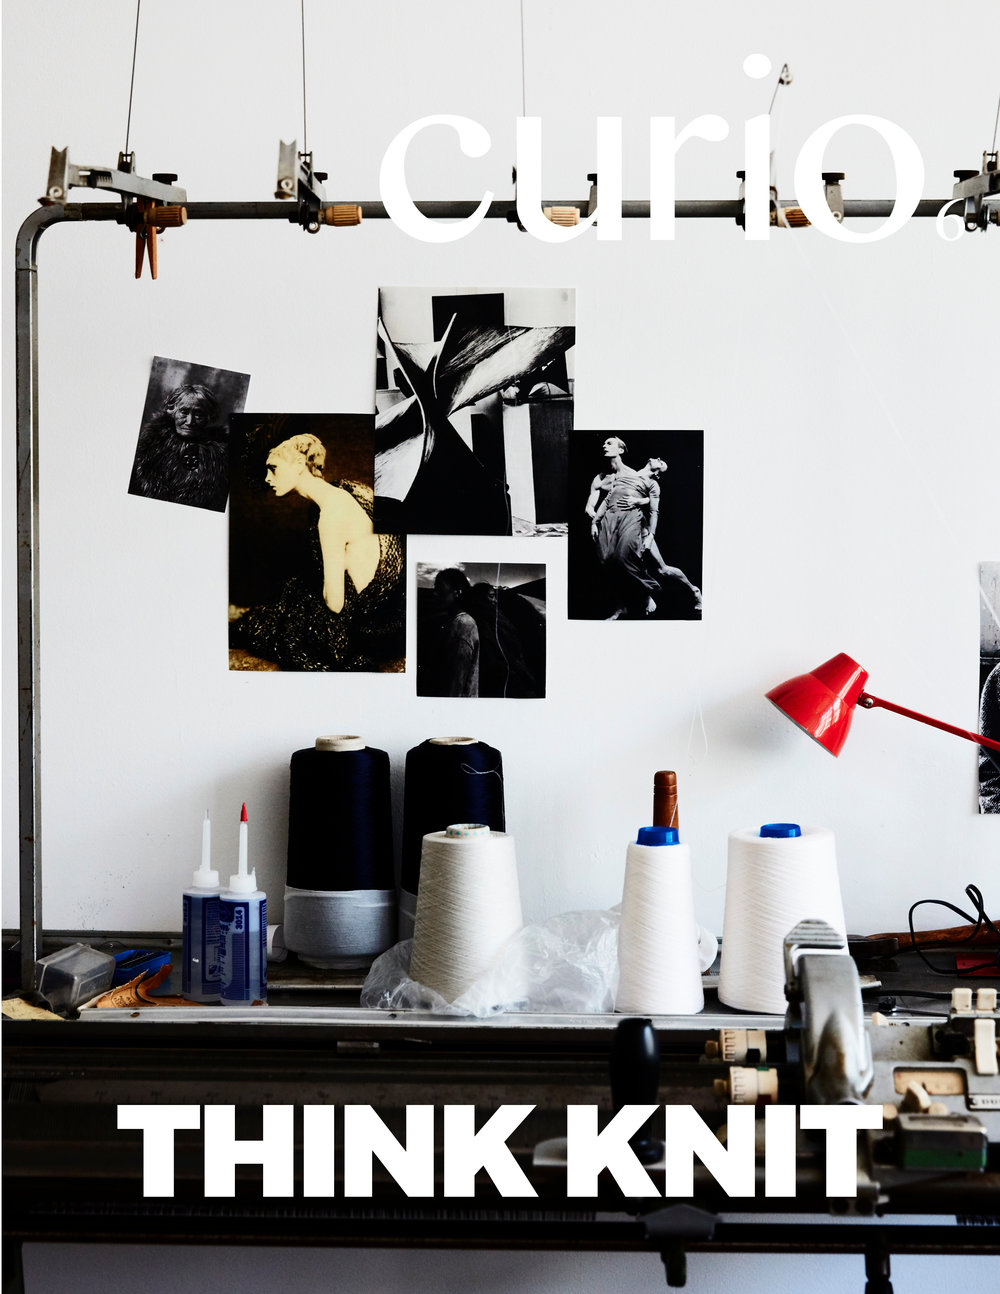 ISSUE 6: THINK KNIT